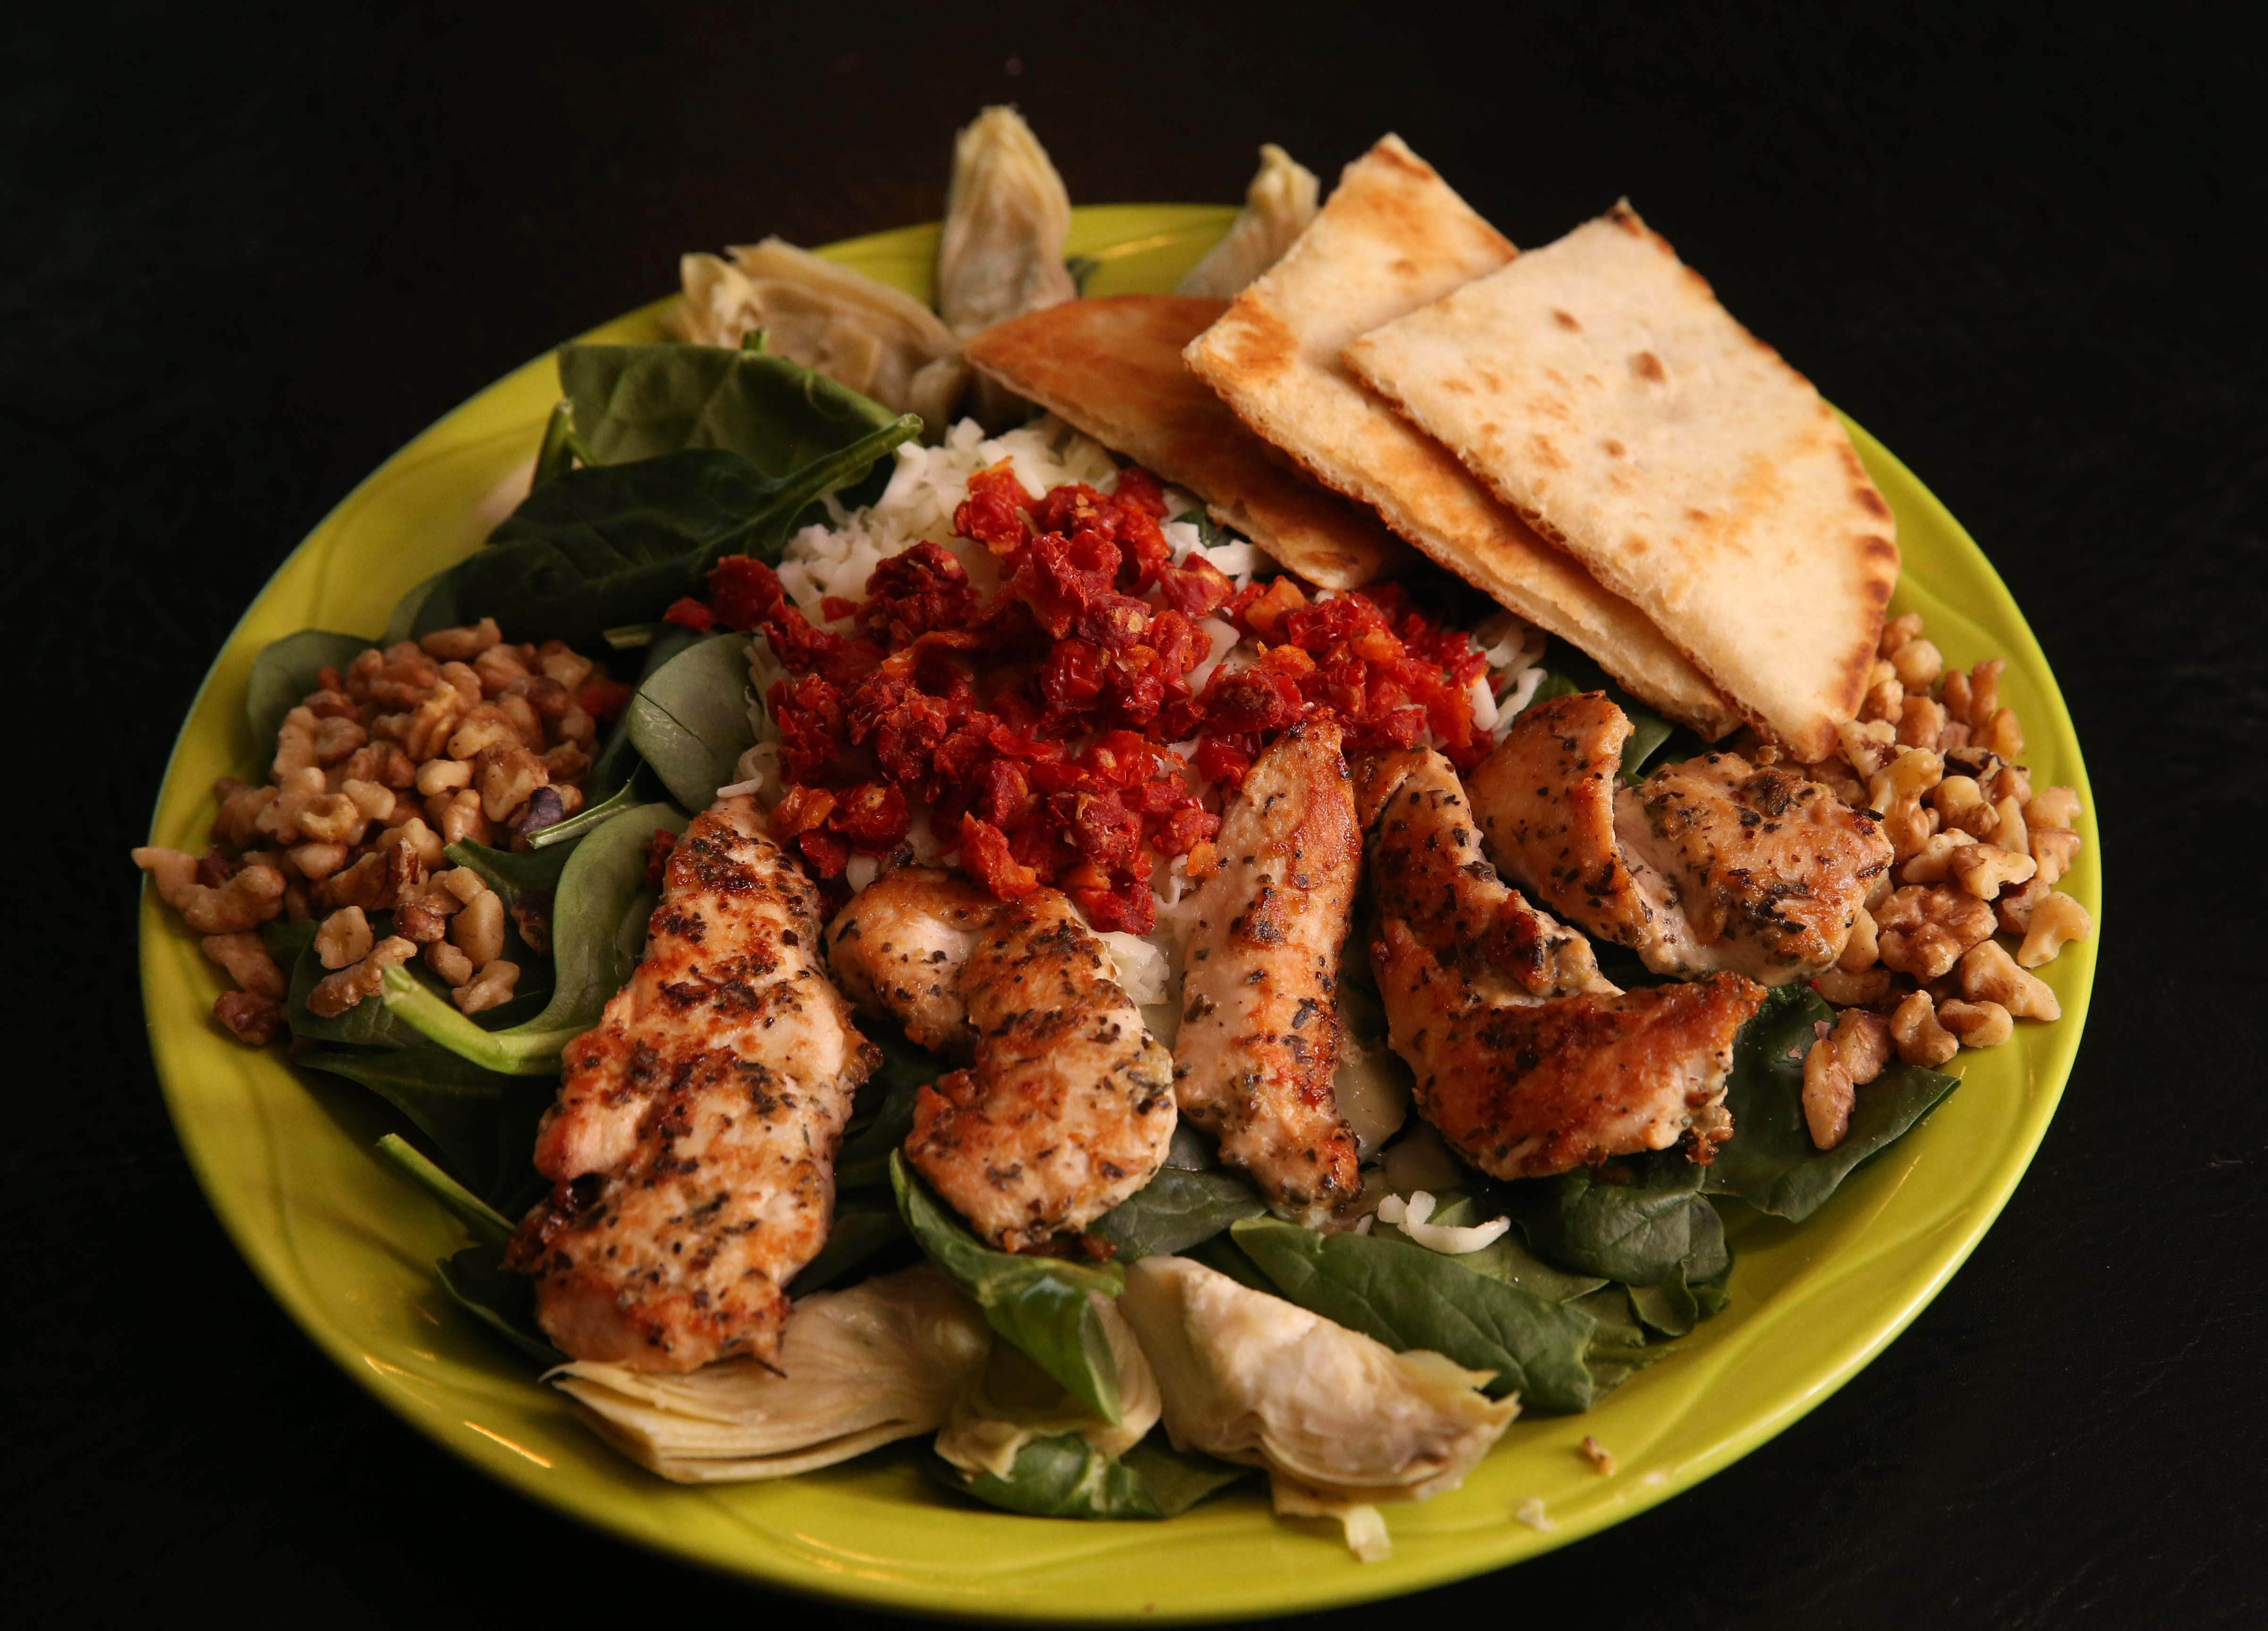 Salad is made with spinach, marinated chicken, mozzarella cheese, artichokes, walnuts and sun-dried tomatoes.